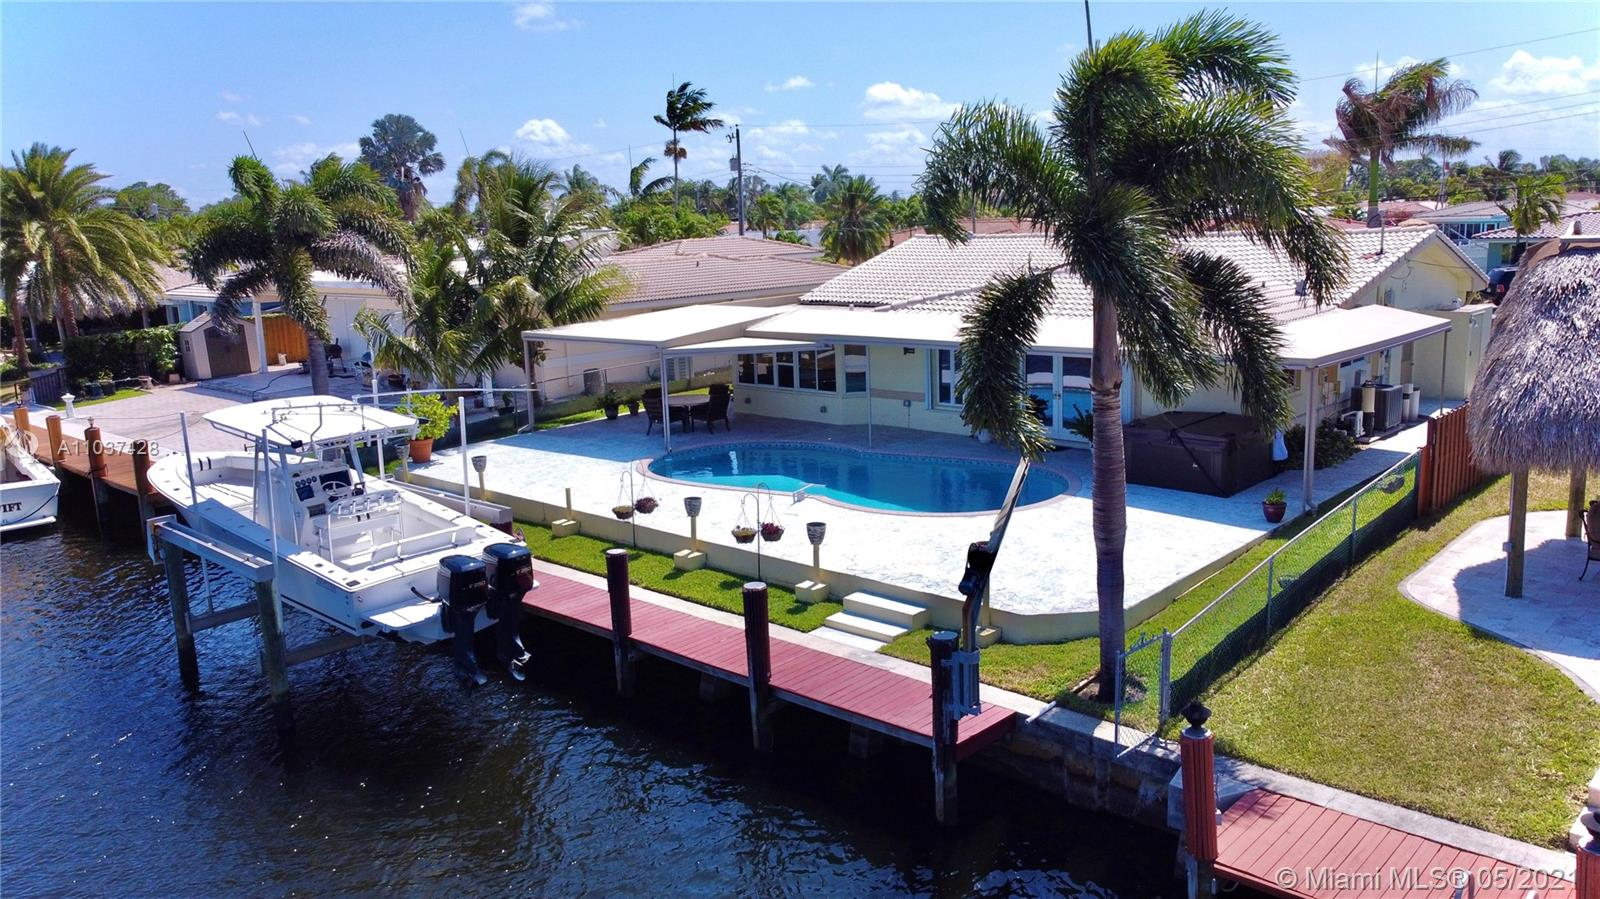 South Florida's Prime Ocean access 15 min,Deep Water Canal dream home, won't last long. With an 2,004 sqft2 this Beautiful, remodeled and addition (2007) of Master Bedroom, Sitting Room, Extra On-Suite Bedroom, Converted garage total 3/2 home in desirable Garden Isles. 2020 - Pool pump ;2018 - Diamond bright resurface pool ;2008 - All plumbing & electrical re-done; 2016 - Flat roof & 2000 - Main Roof ;Partial Impact and hurricane shutters; 2020 - Seawall/pilings ; 2000 - Boatlift 13,000 pounds; Complete Roof Insulation; Open kitchen and patio with salt water pool and outdoor spa make this home the perfect getaway to dock your yacht and enjoy boating at its best. 70' sea wall and dock. 2 outside storage space, Complete Roof Insulation ,tankless water heater and more.